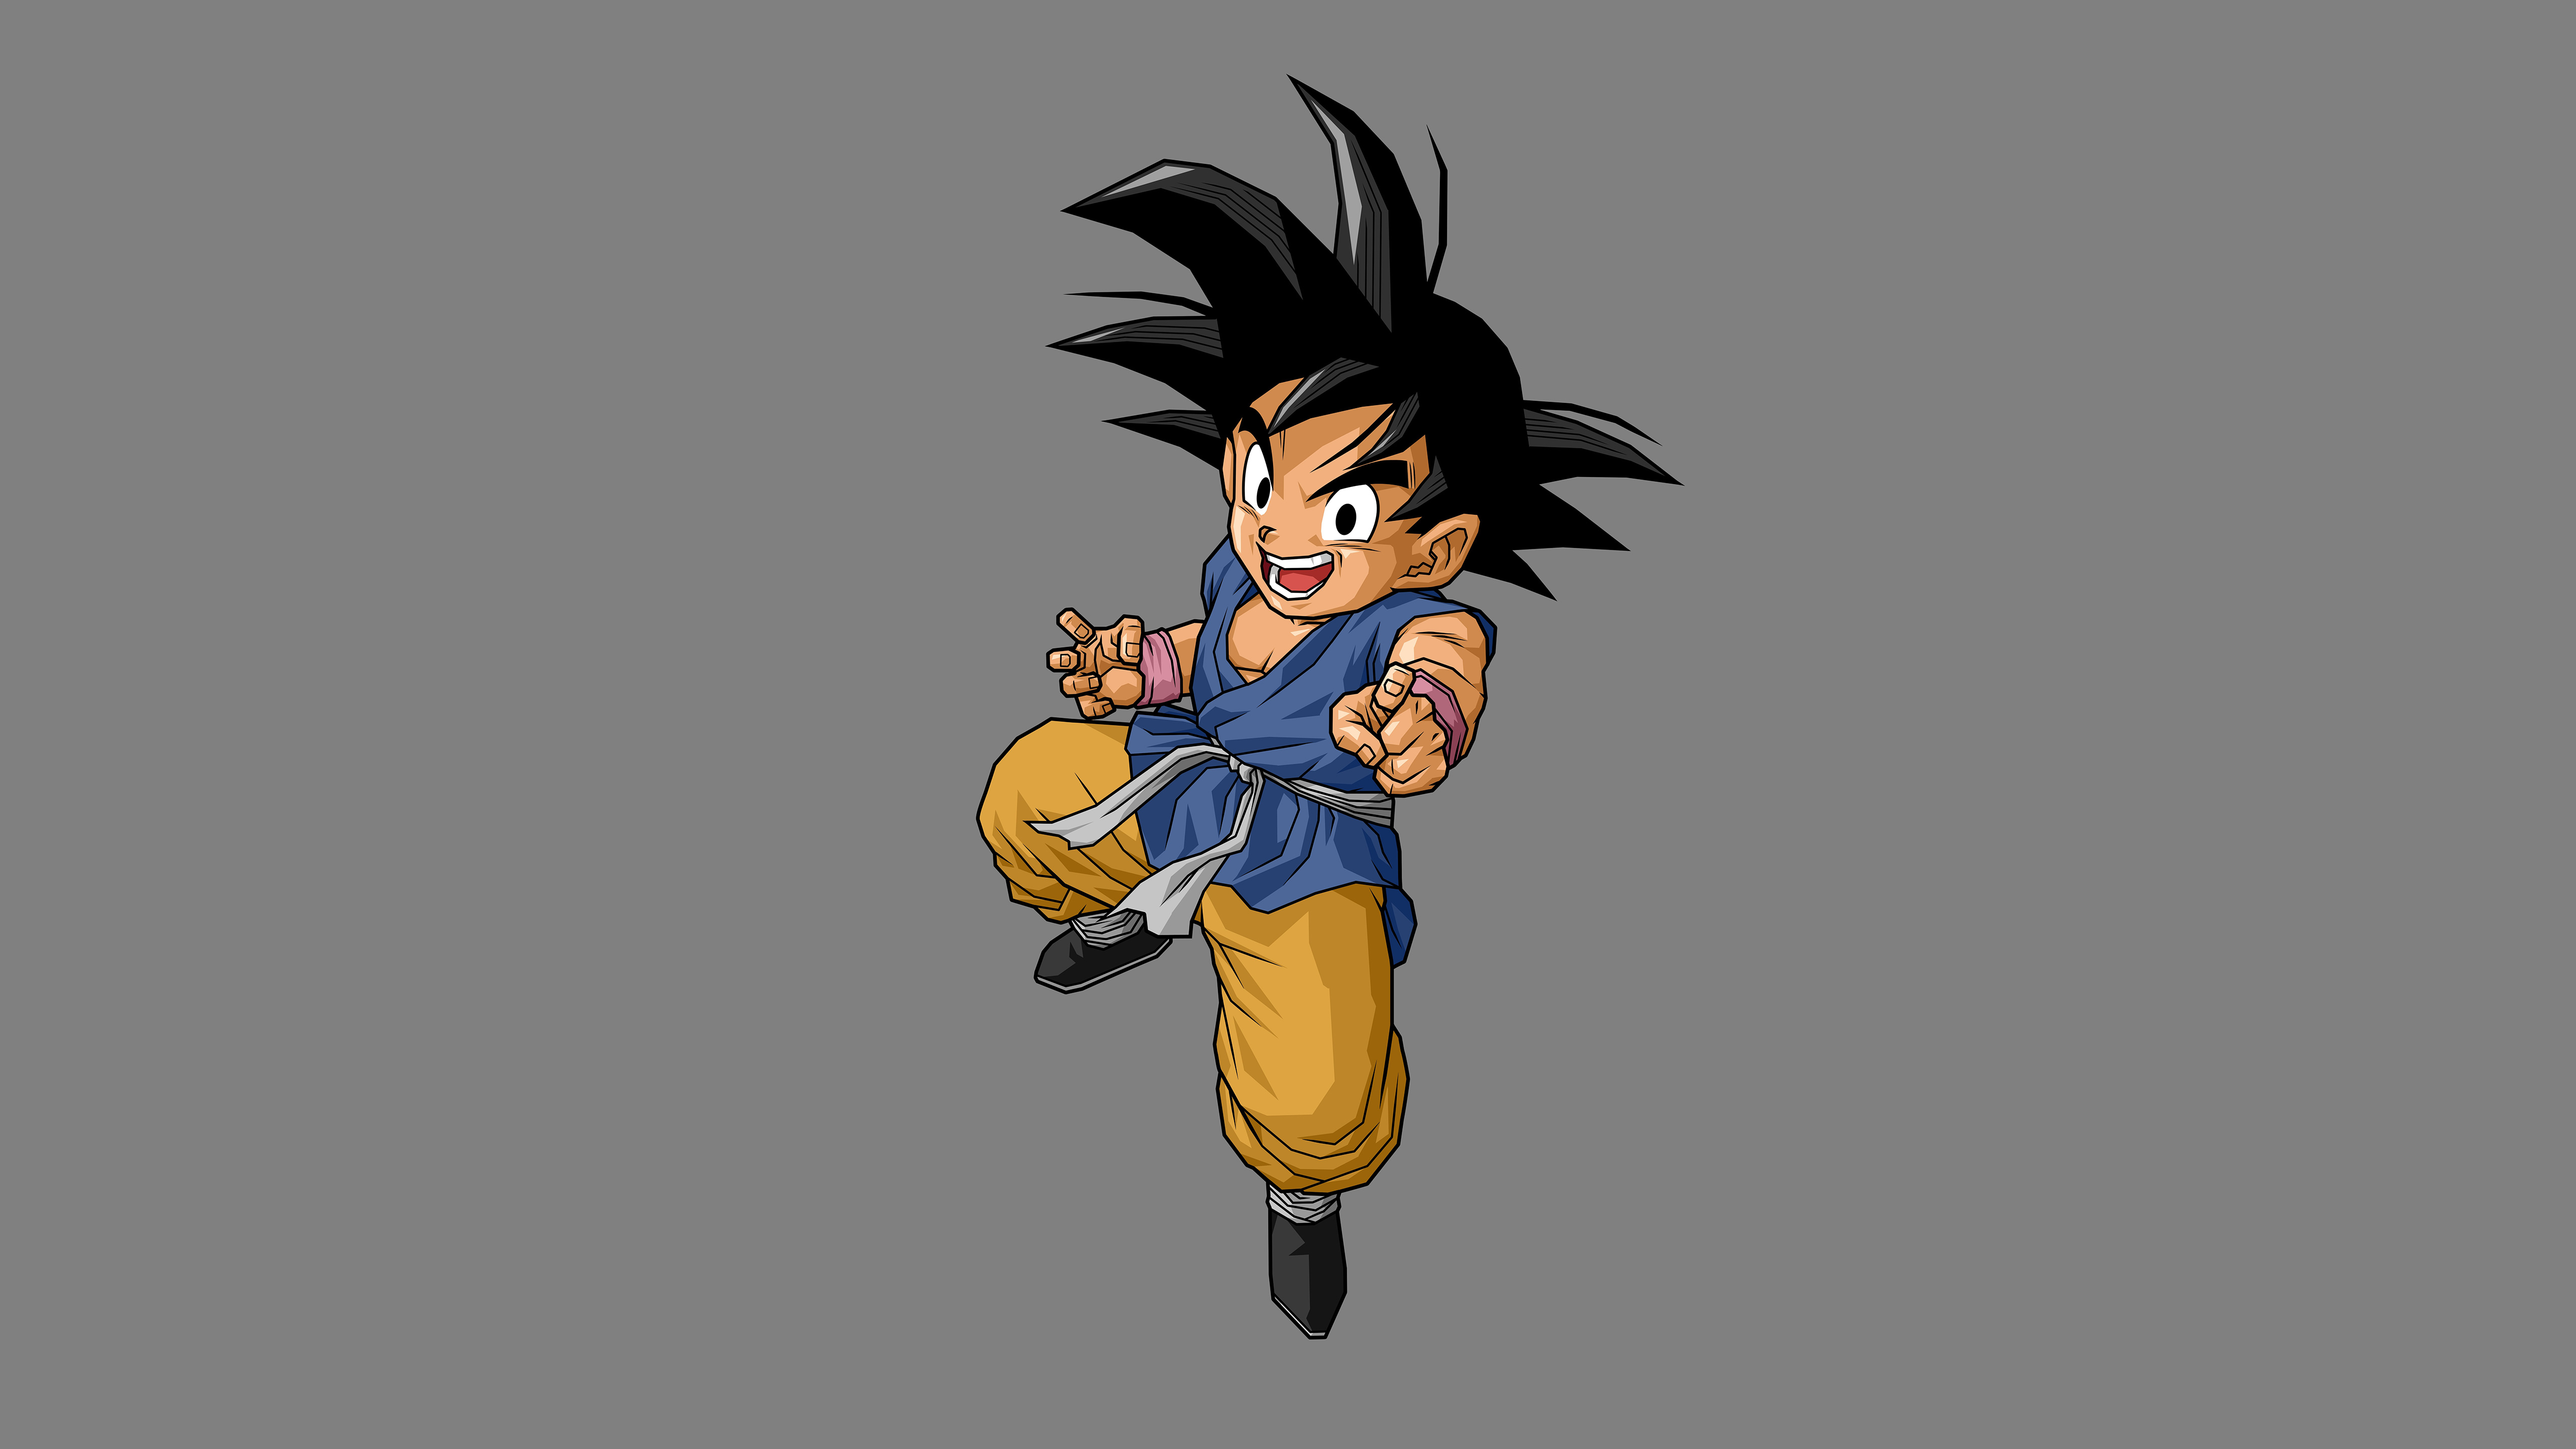 1366x768 Dragon Ball Son Goku 5k Minimalism 1366x768 Resolution Hd 4k Wallpapers Images Backgrounds Photos And Pictures